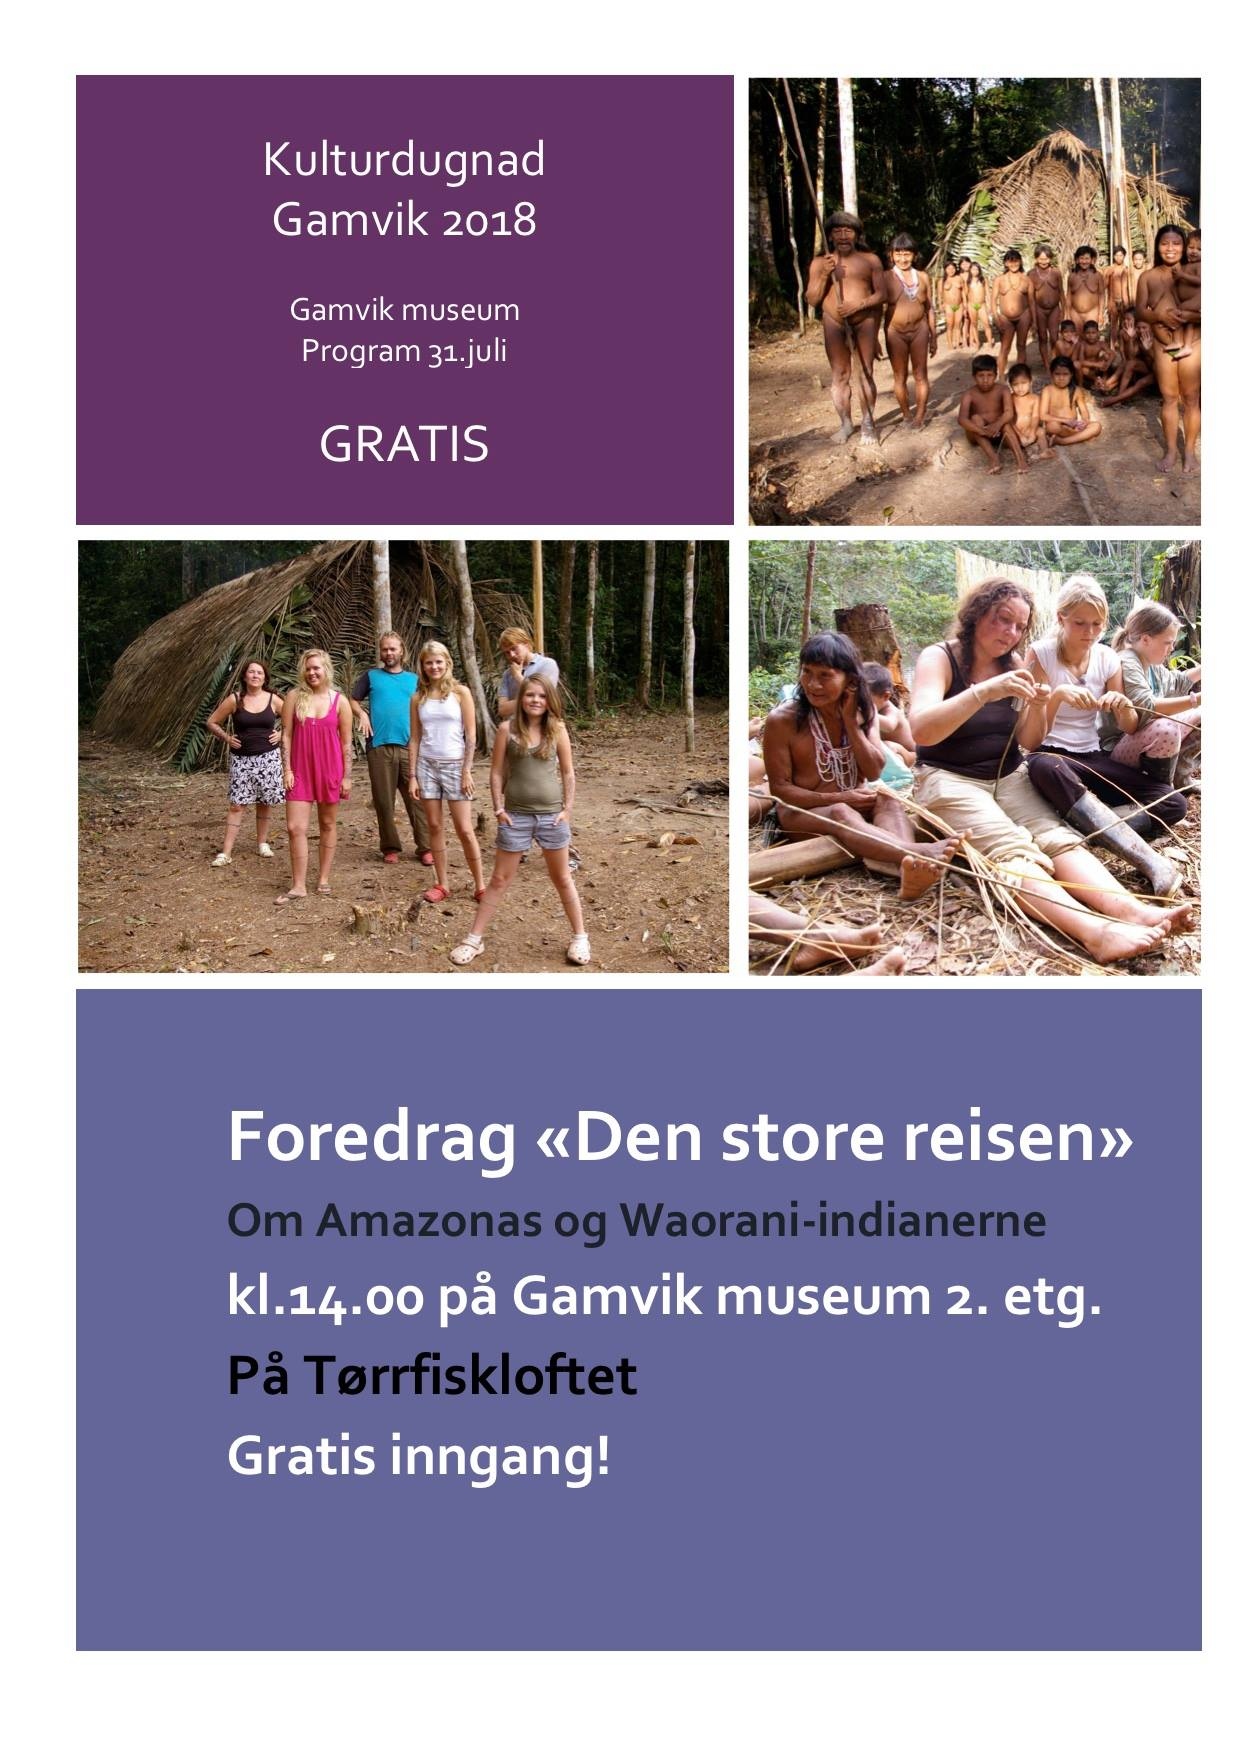 Program Kulturdugnad Gamvik 2018 5